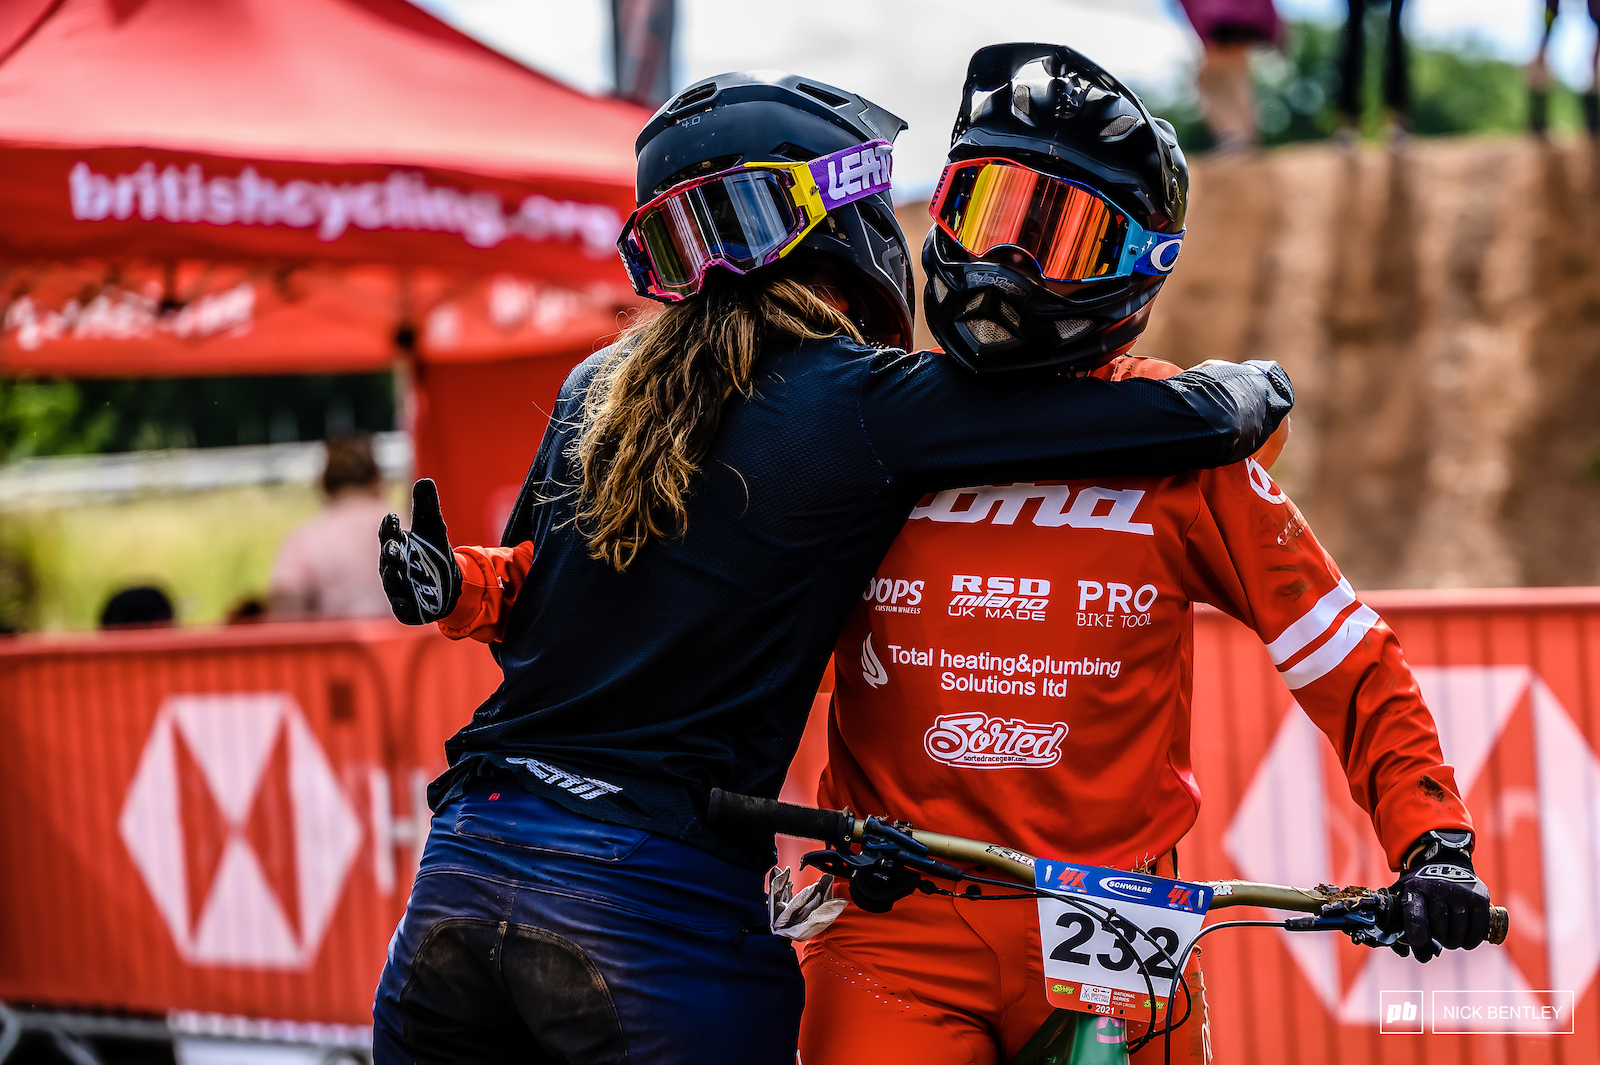 Another amazing moment this weekend between the riders. Josie Mcfall took a nasty crash in the women s final there was no celebrations from her fellow riders untill they sore her safely cross the line. Another fantastic example of the family atmosphere amounts the 4X riders